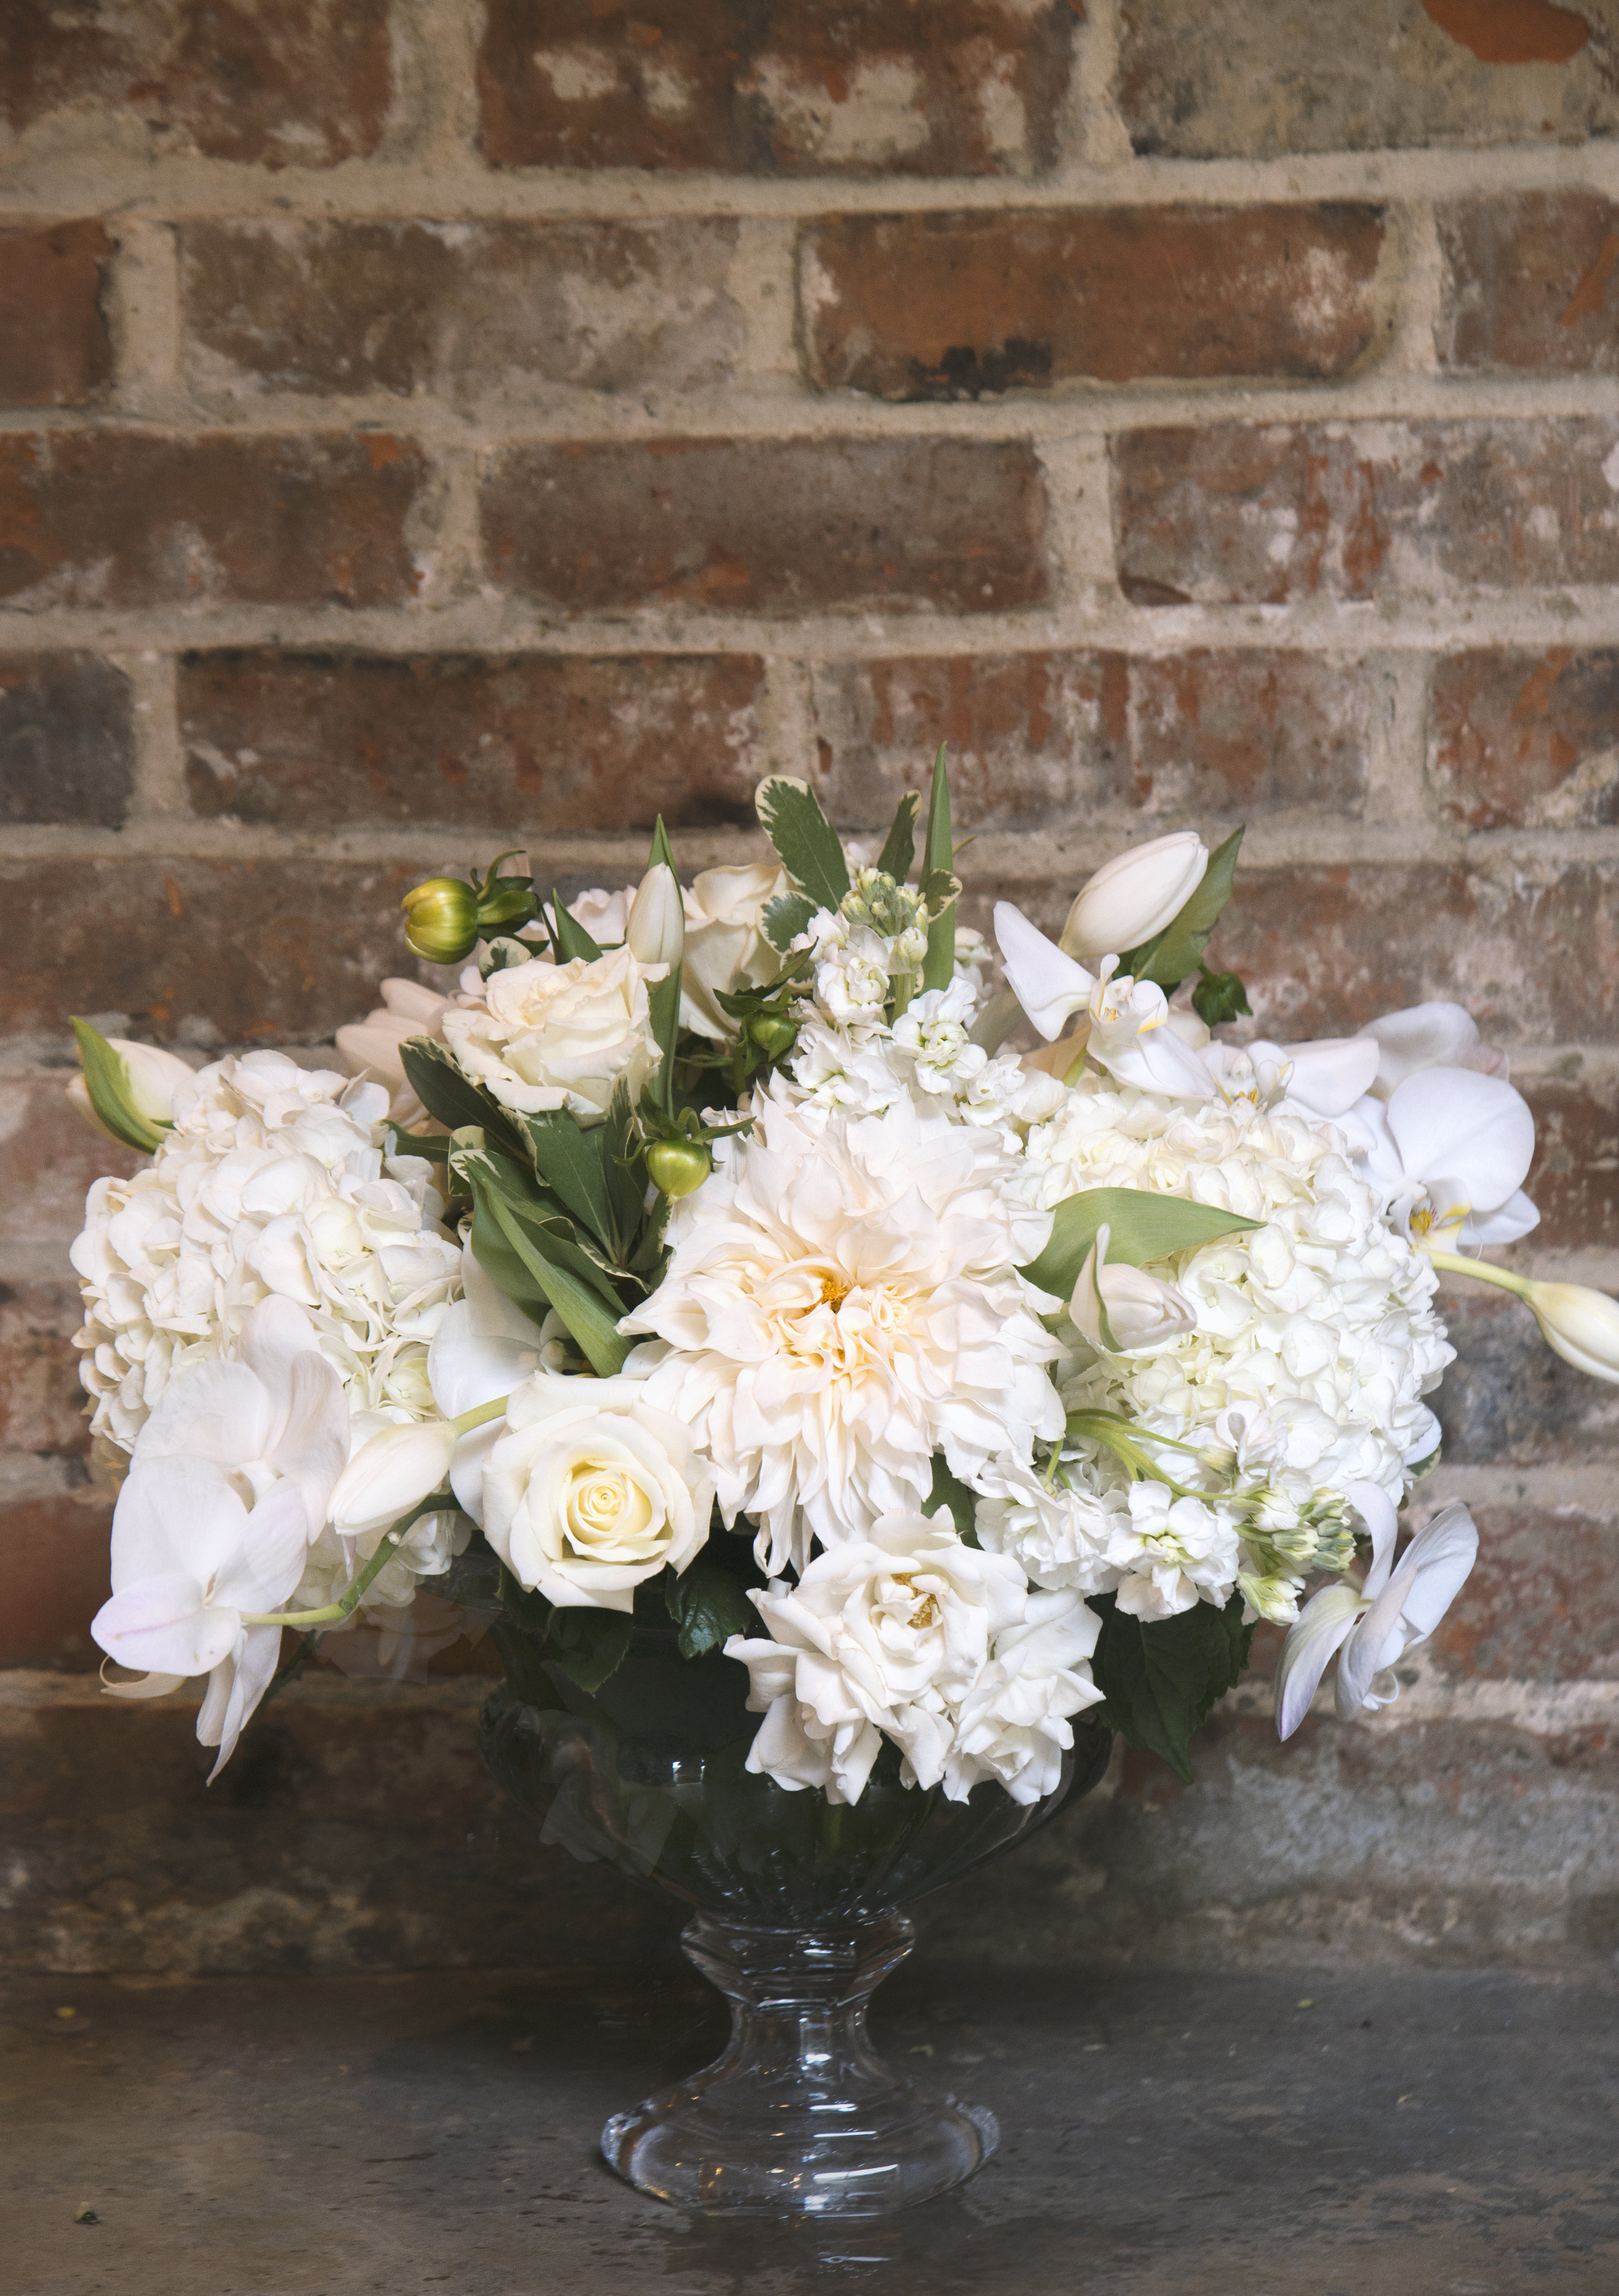 clooney mums white phals hydrangea and roses and sprays and mitchs flowers.jpg